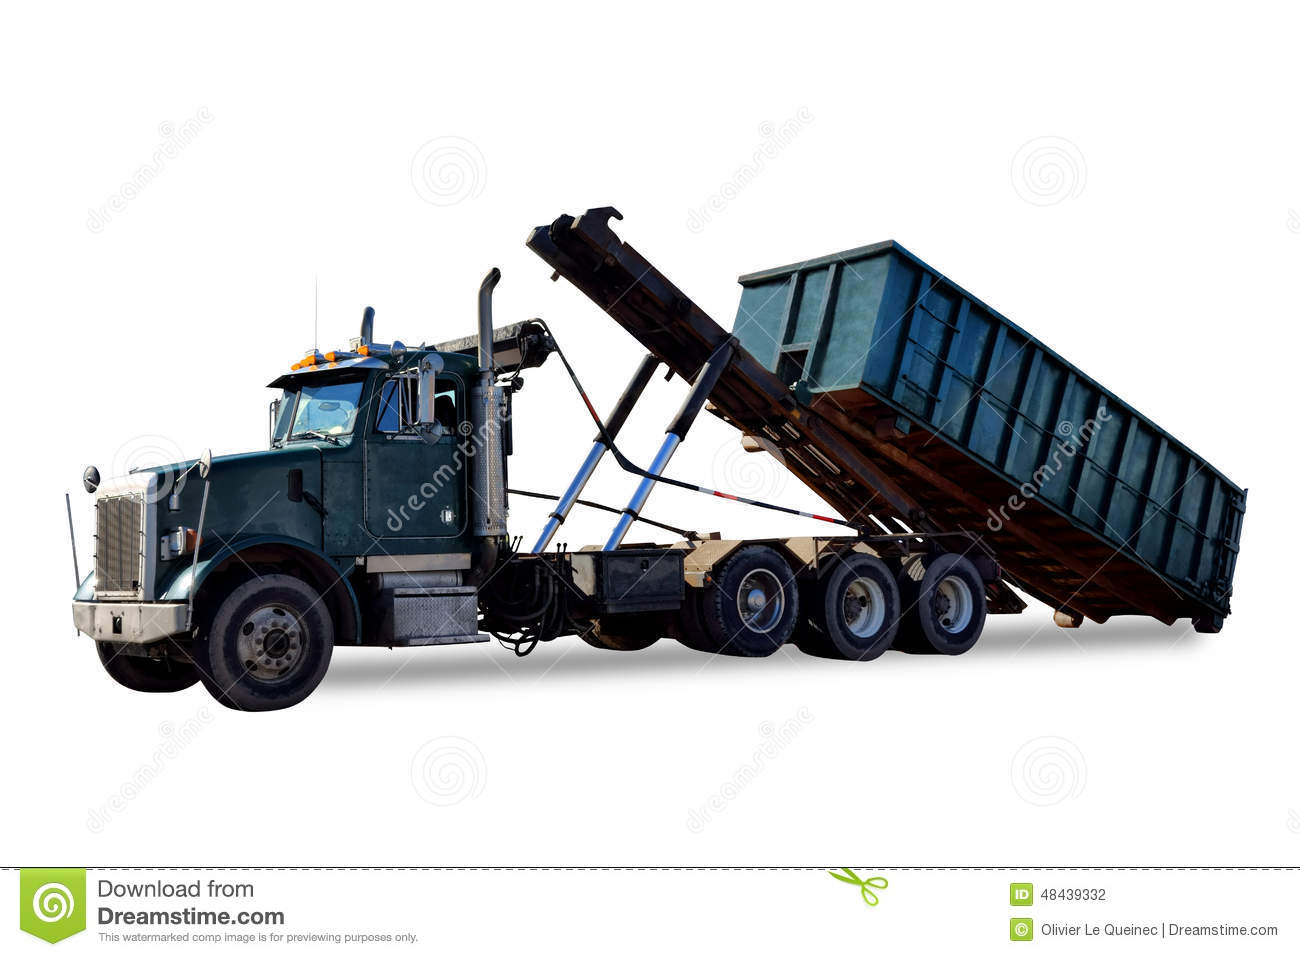 ... Truck Unloading Trash Container Dumpster Stock Photo - Image: 48439332